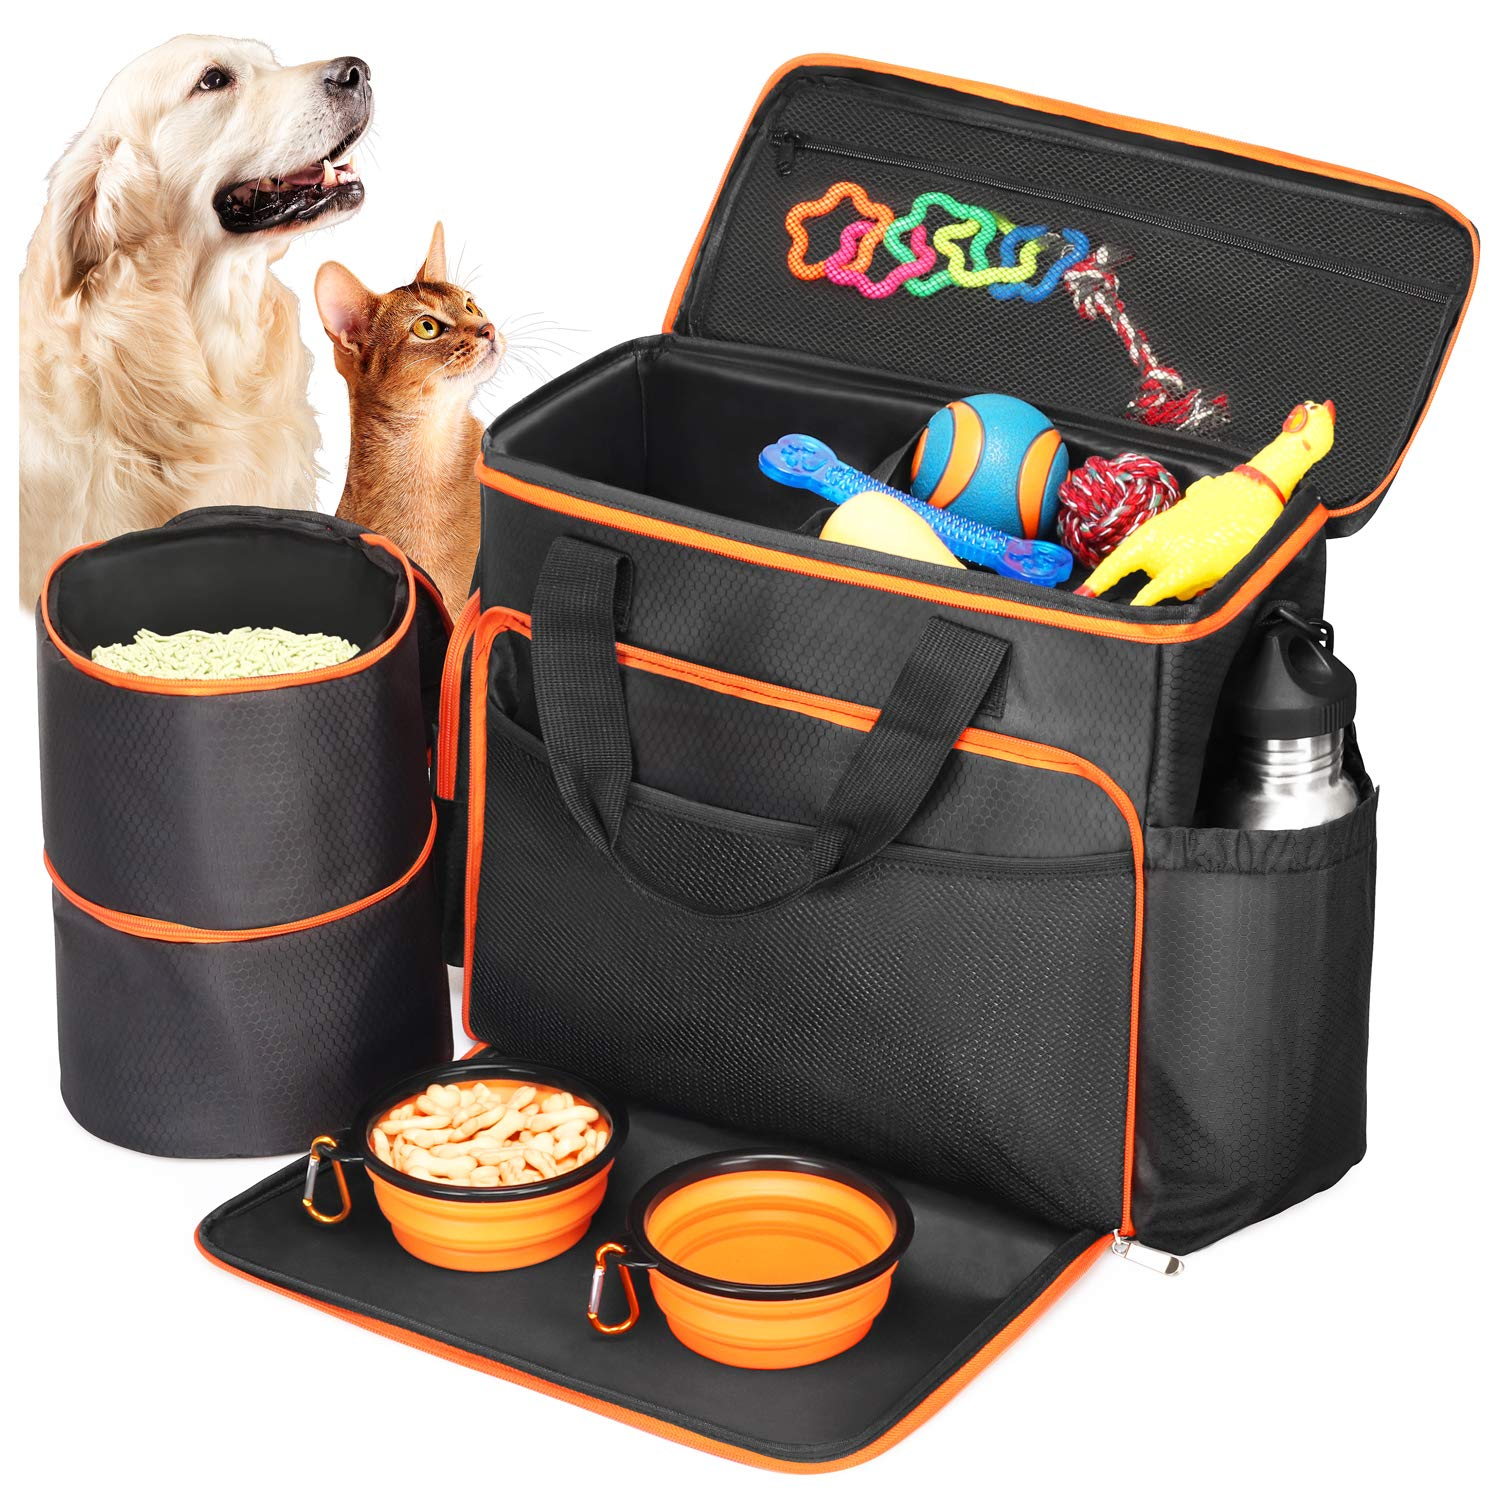 Babyltrl Dog Travel Bag - Airline Approved Pet Food Carrier Bag for Dogs - Includes 1 Pet Travel Tote, 2 Dog Food Containers, 2 Collapsible Dog Bowls by Babyltrl